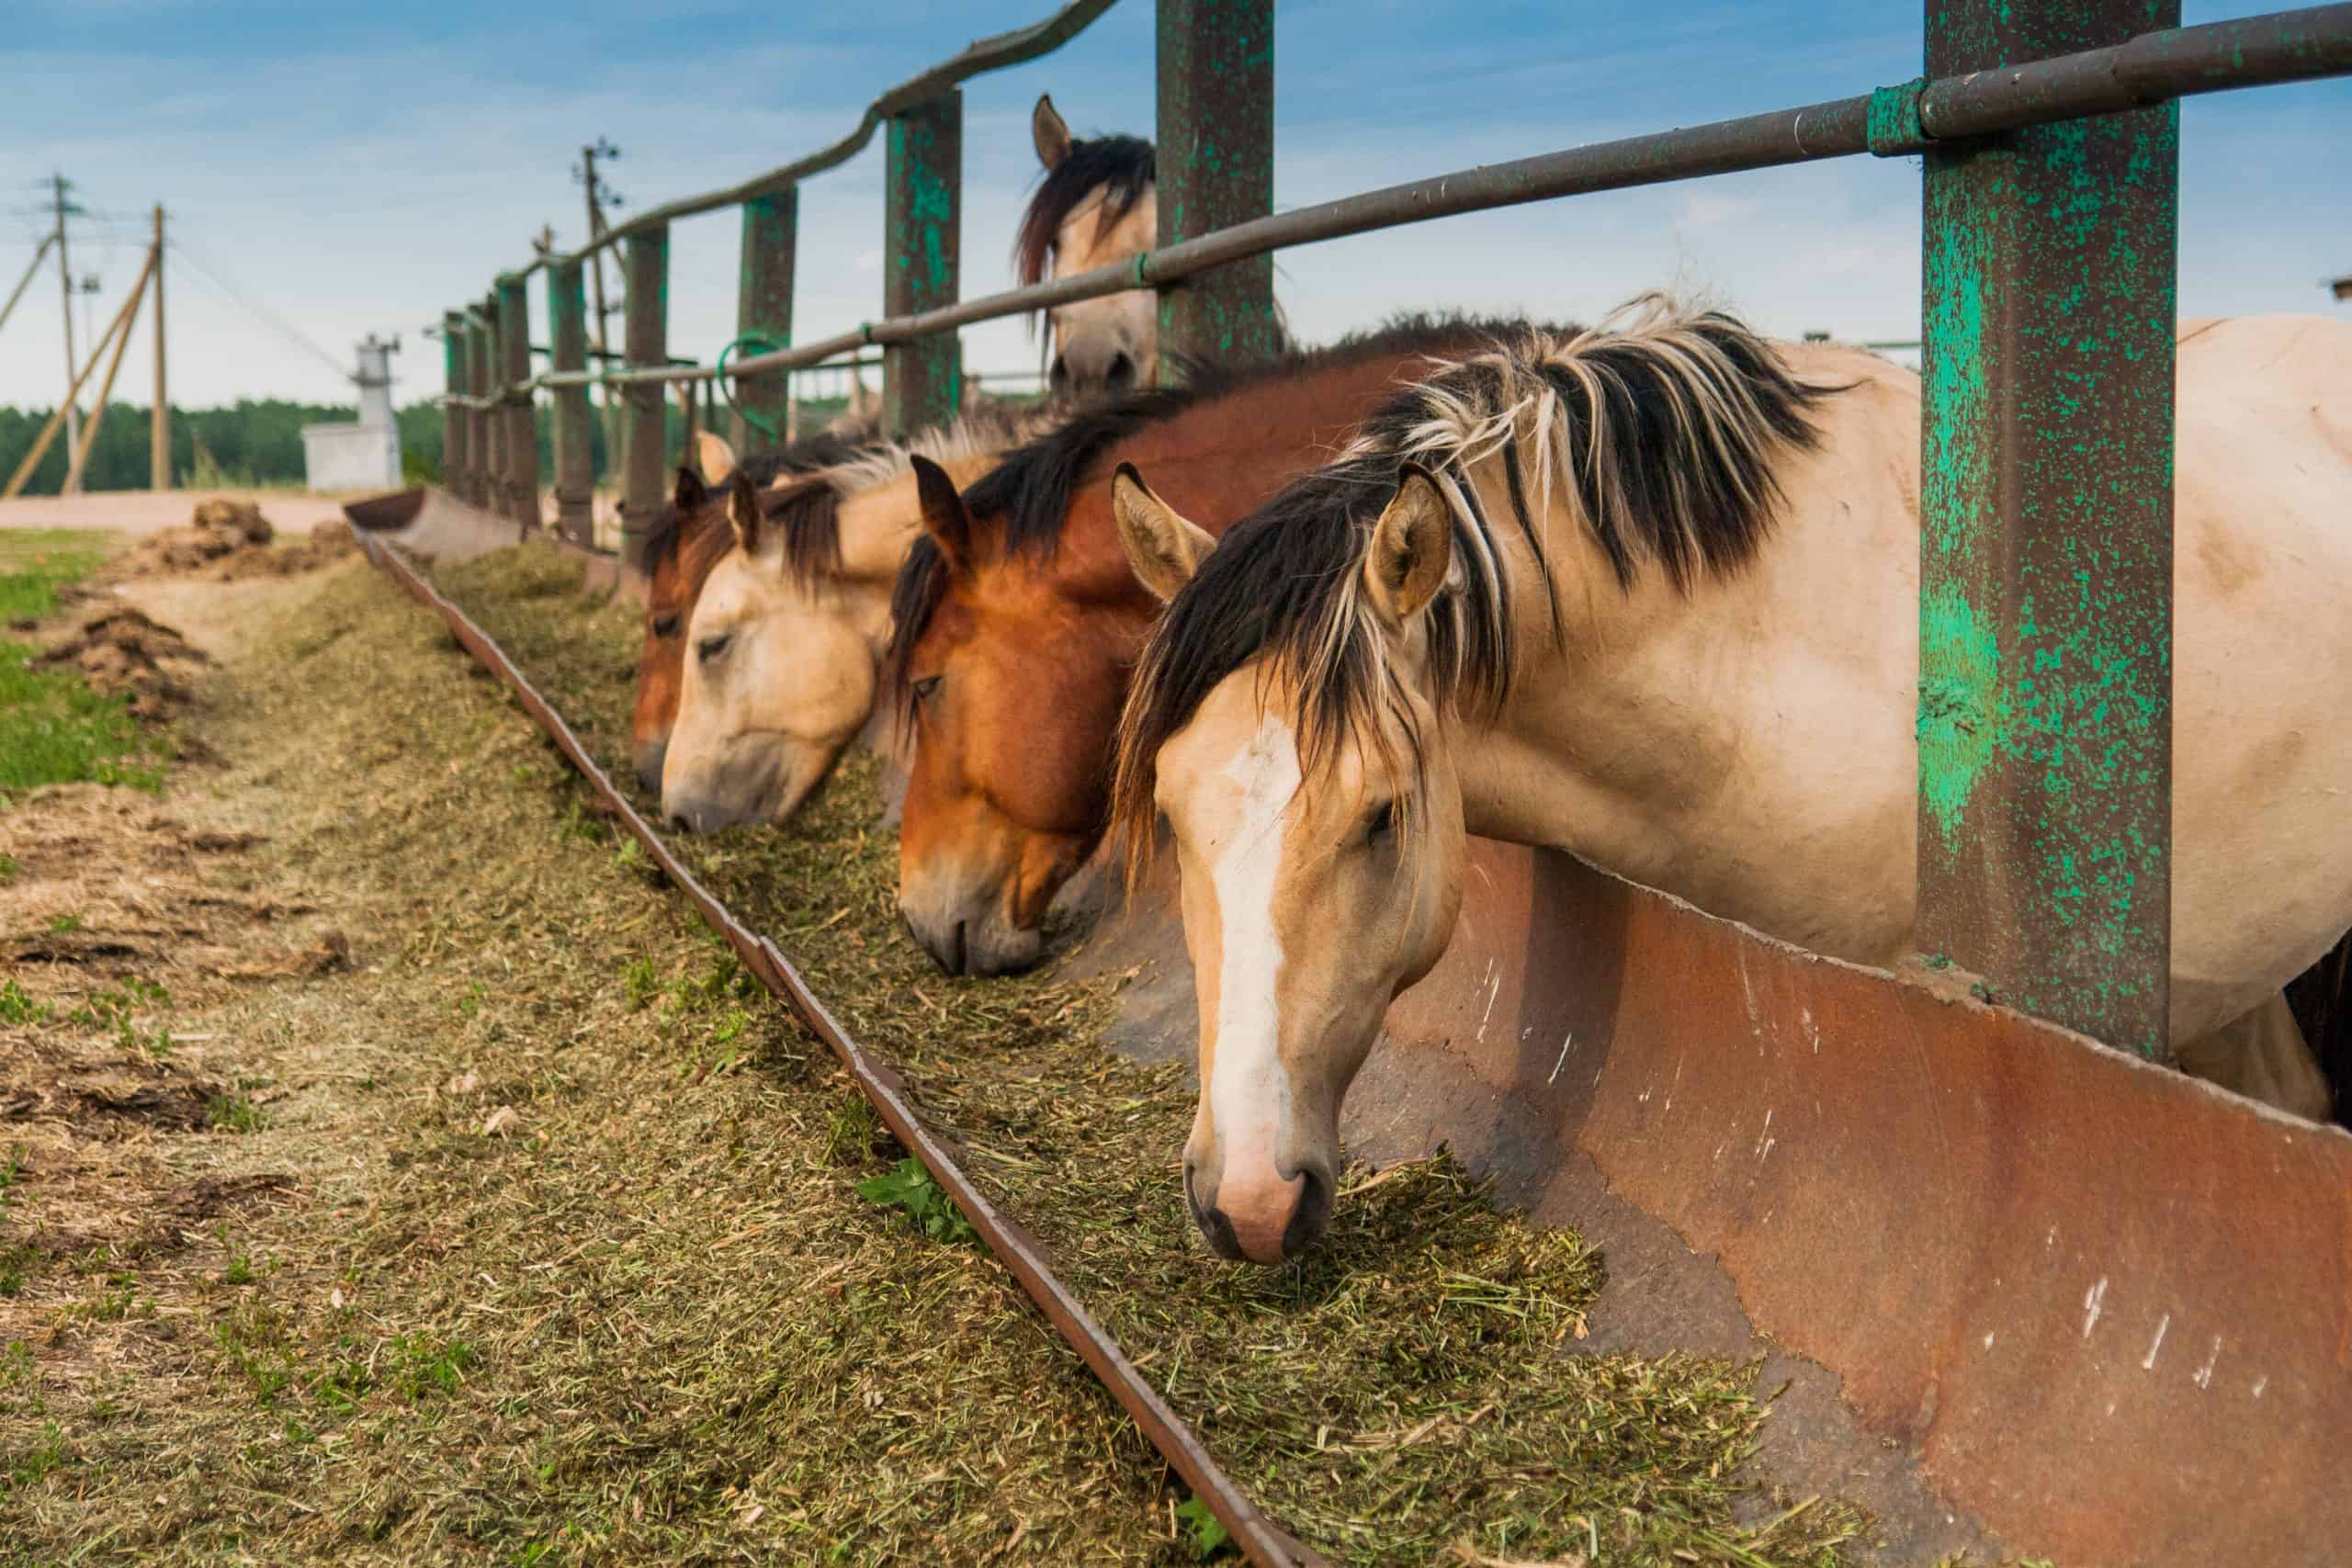 Hungry horses want to eat, eat from the trough